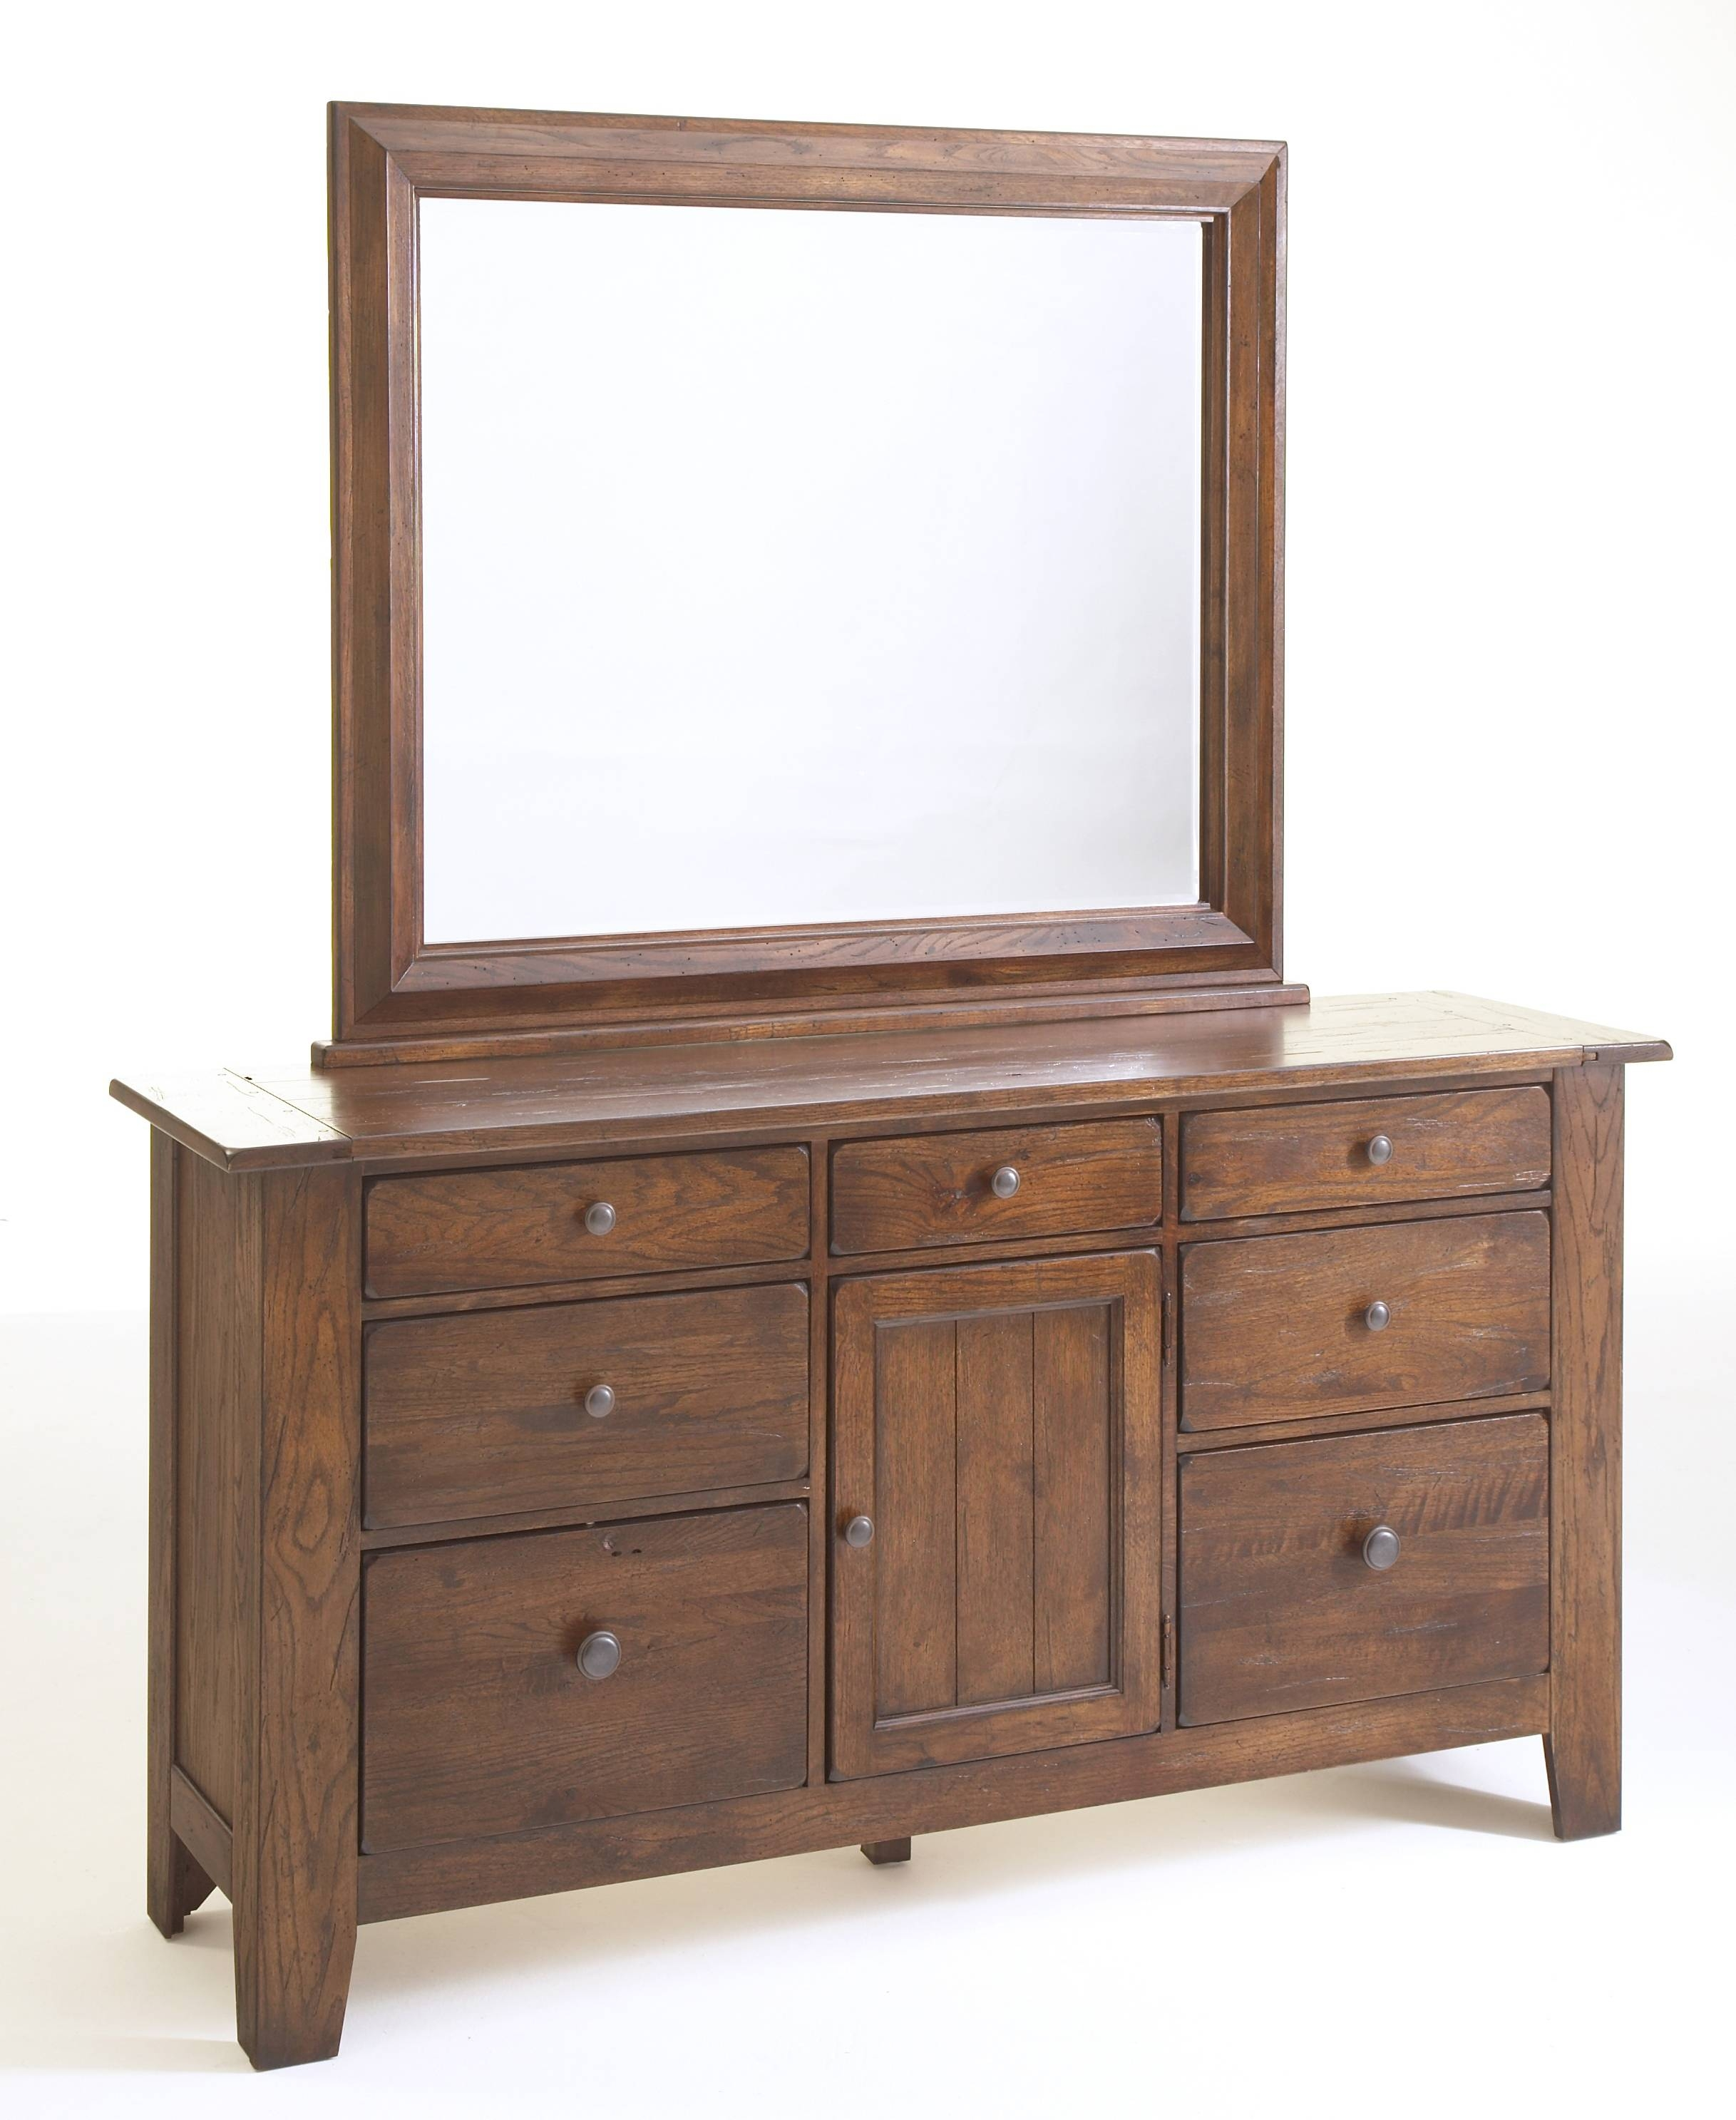 Broyhill Attic Heirlooms Rustic Oak Dresser Mirror 4399-36 within Rustic Oak Mirrors (Image 4 of 25)